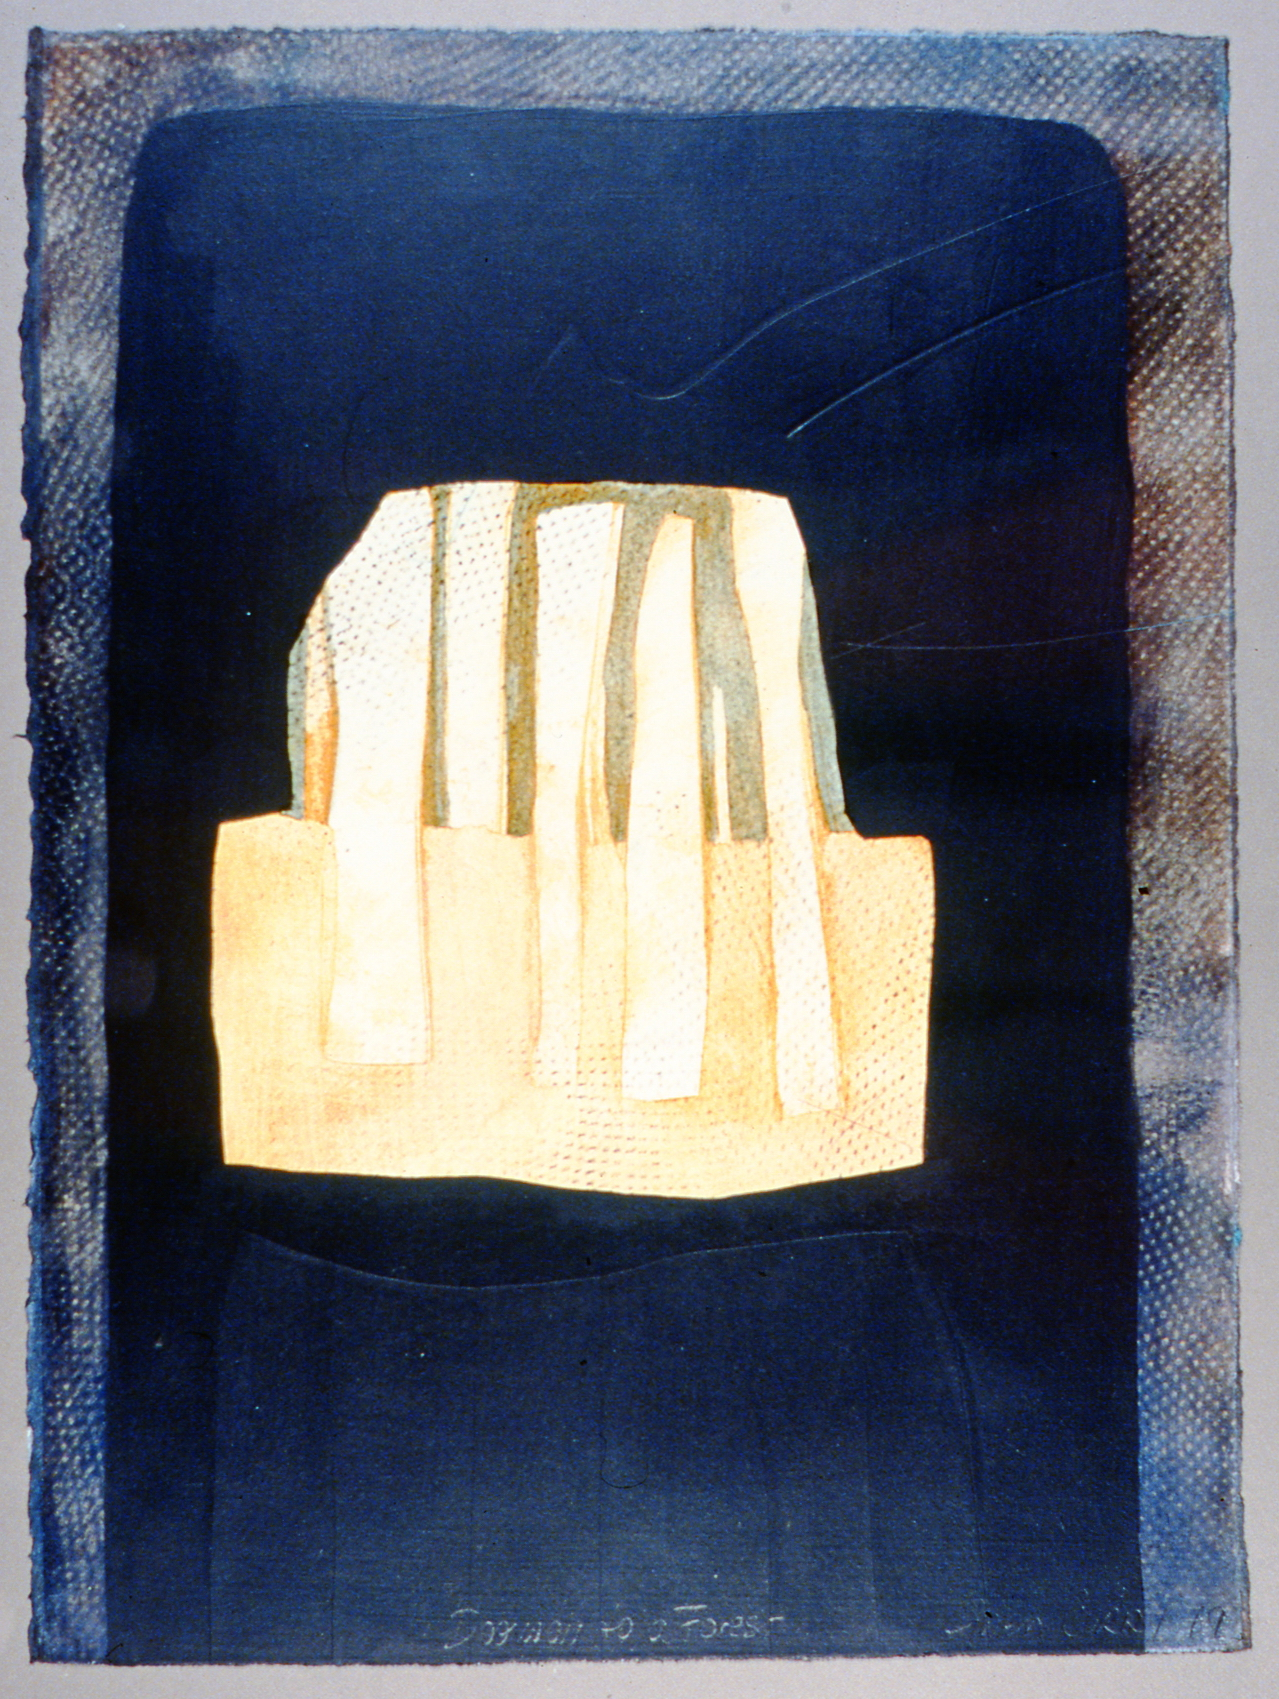 Doorway to a Forest , 1979, Gwen Curry, acrylic on paper, 39 cm x 29 cm, 2003.03.03, gift of Mrs. Rosita Tovell